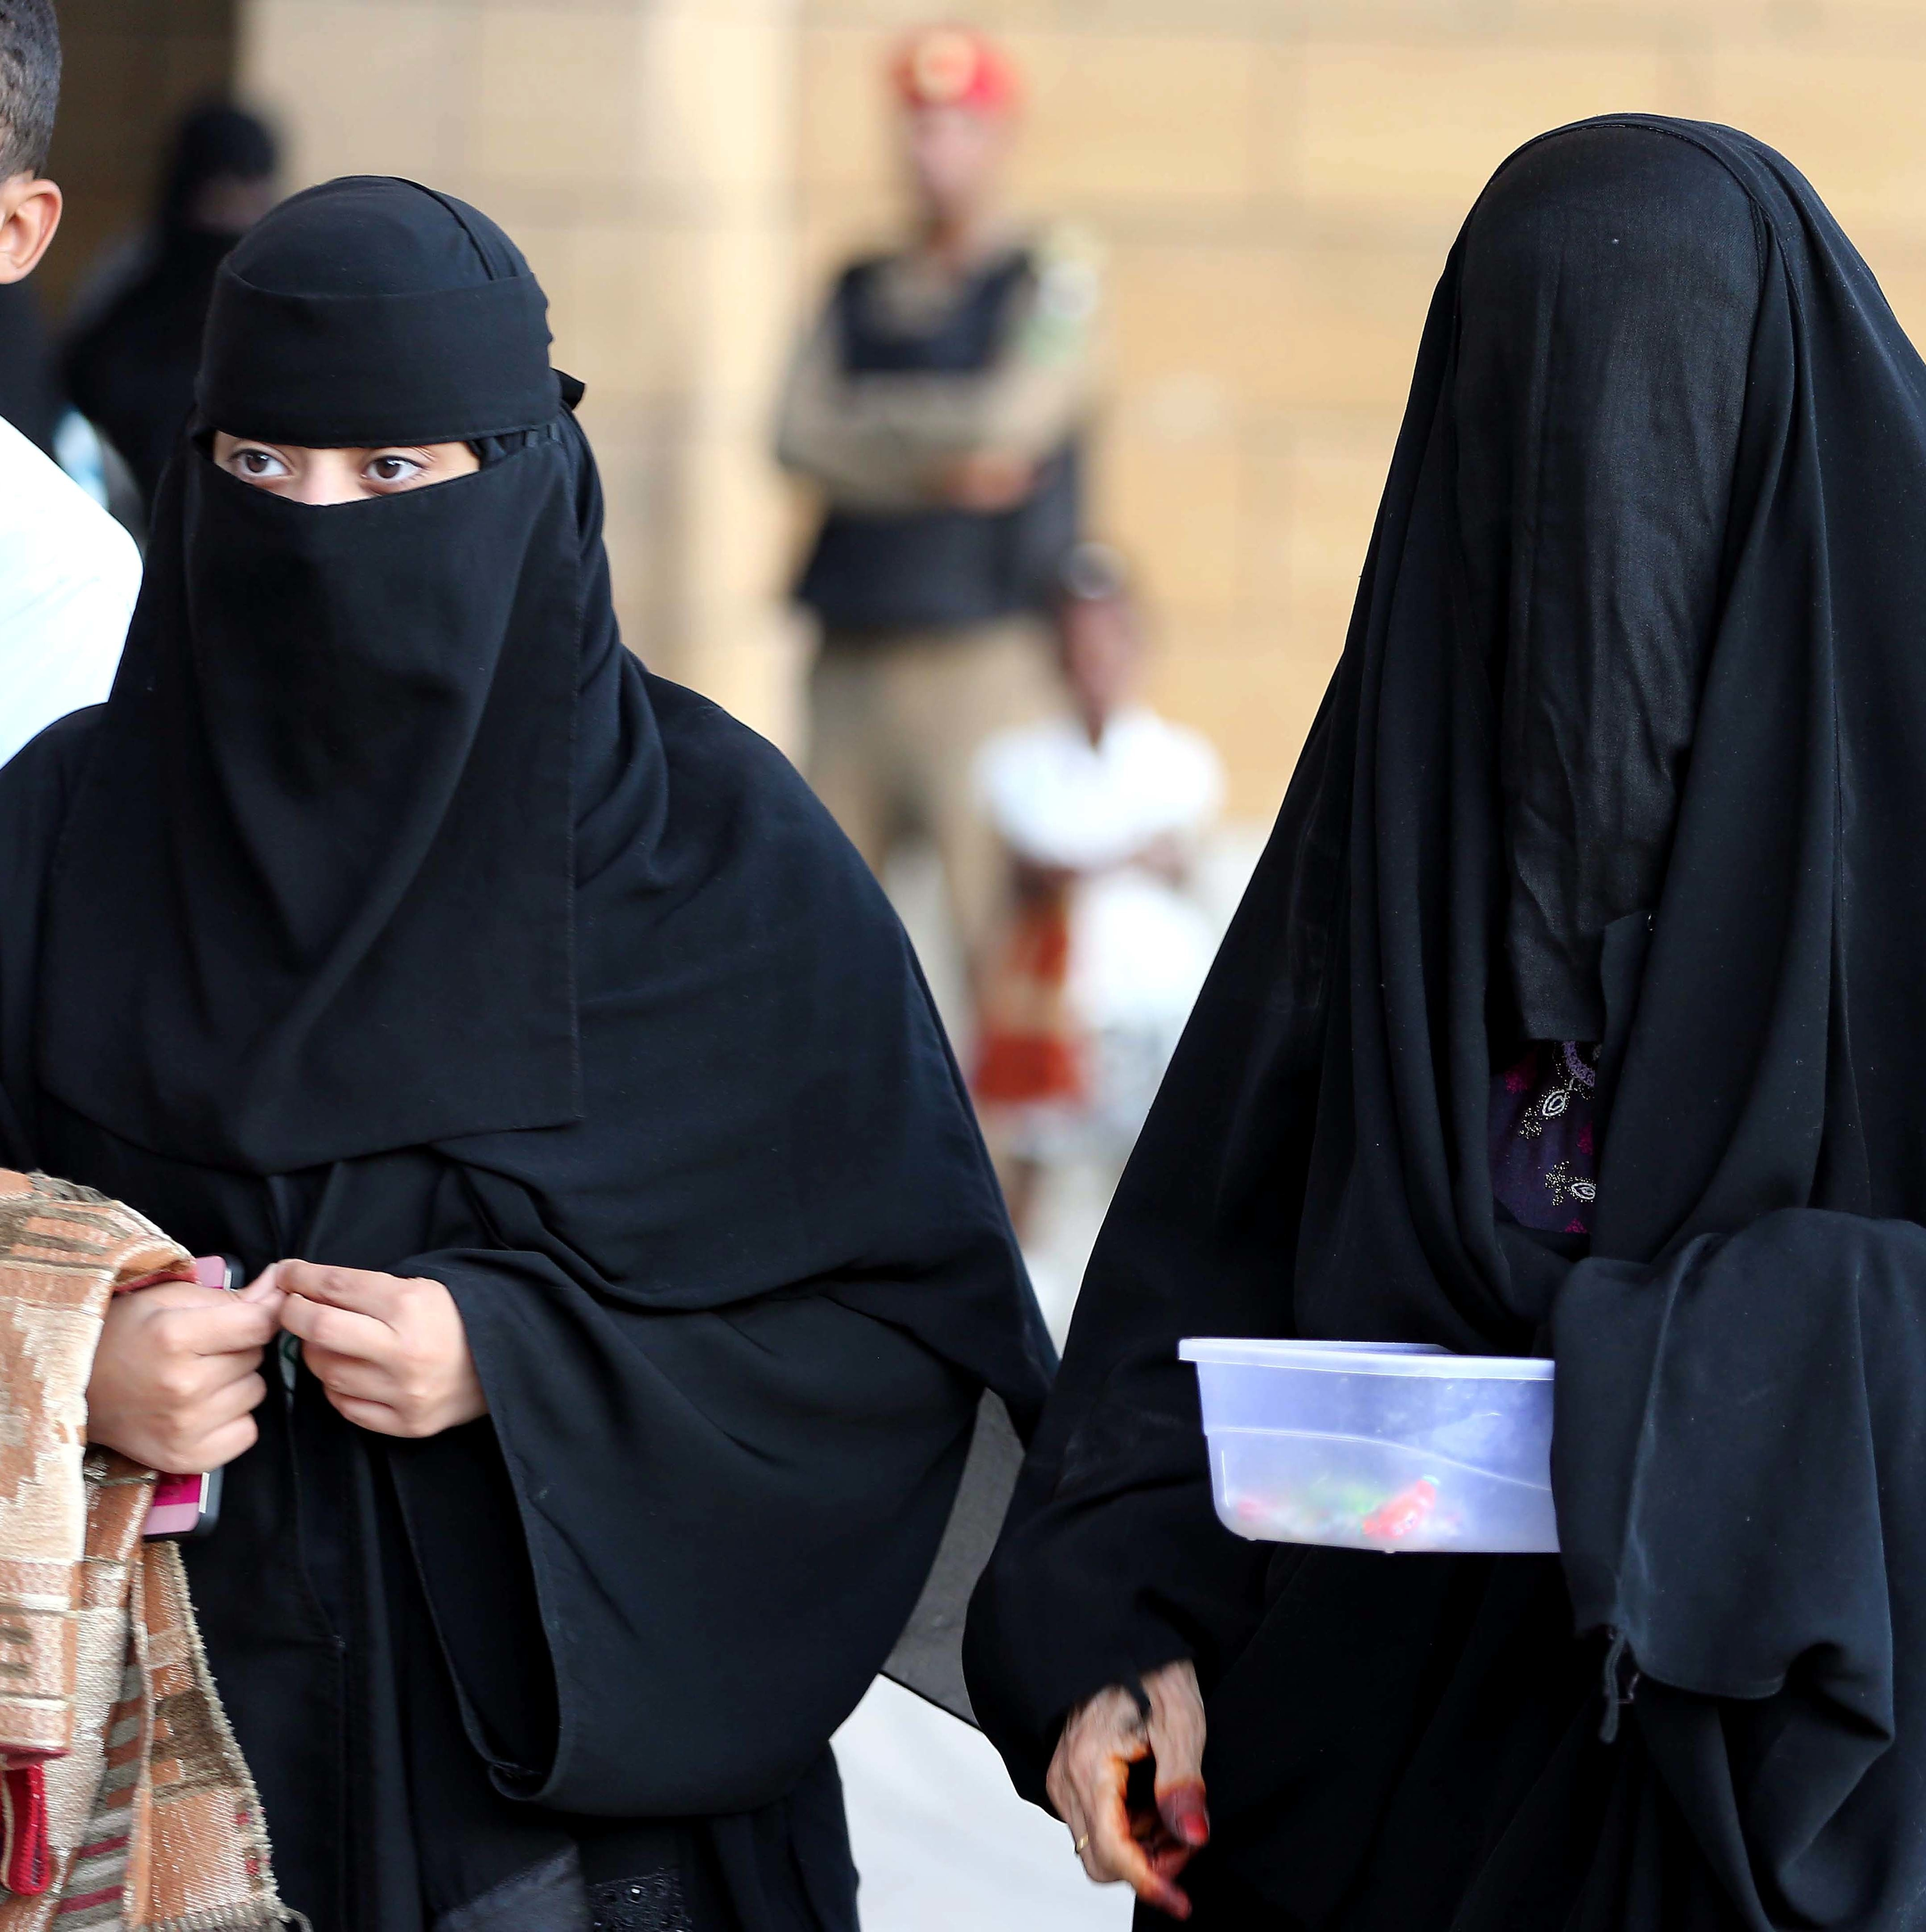 middle eastern single women in huletts landing Meet middle eastern single women in clemons interested in meeting new people to date on zoosk over 30 million single people are using zoosk to find people to date.